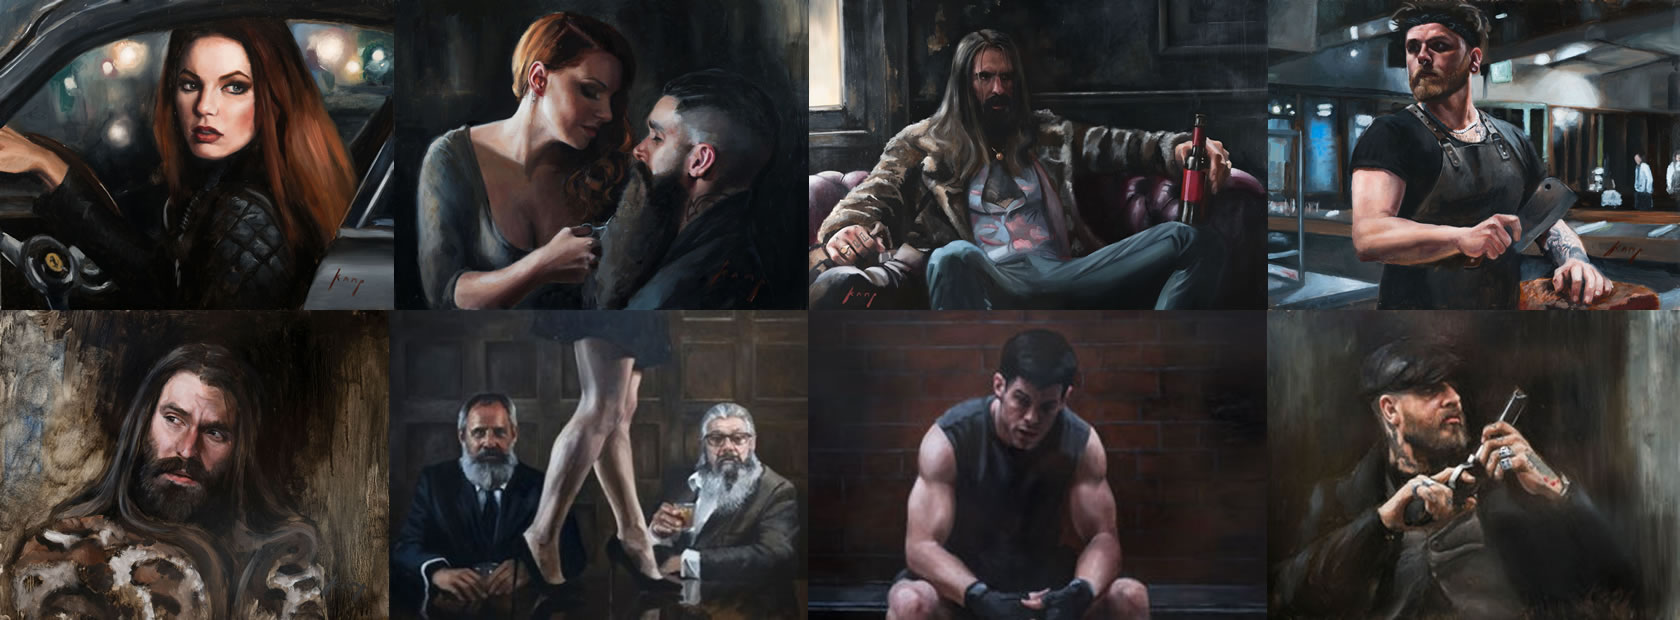 Paintings by Vincent Camp